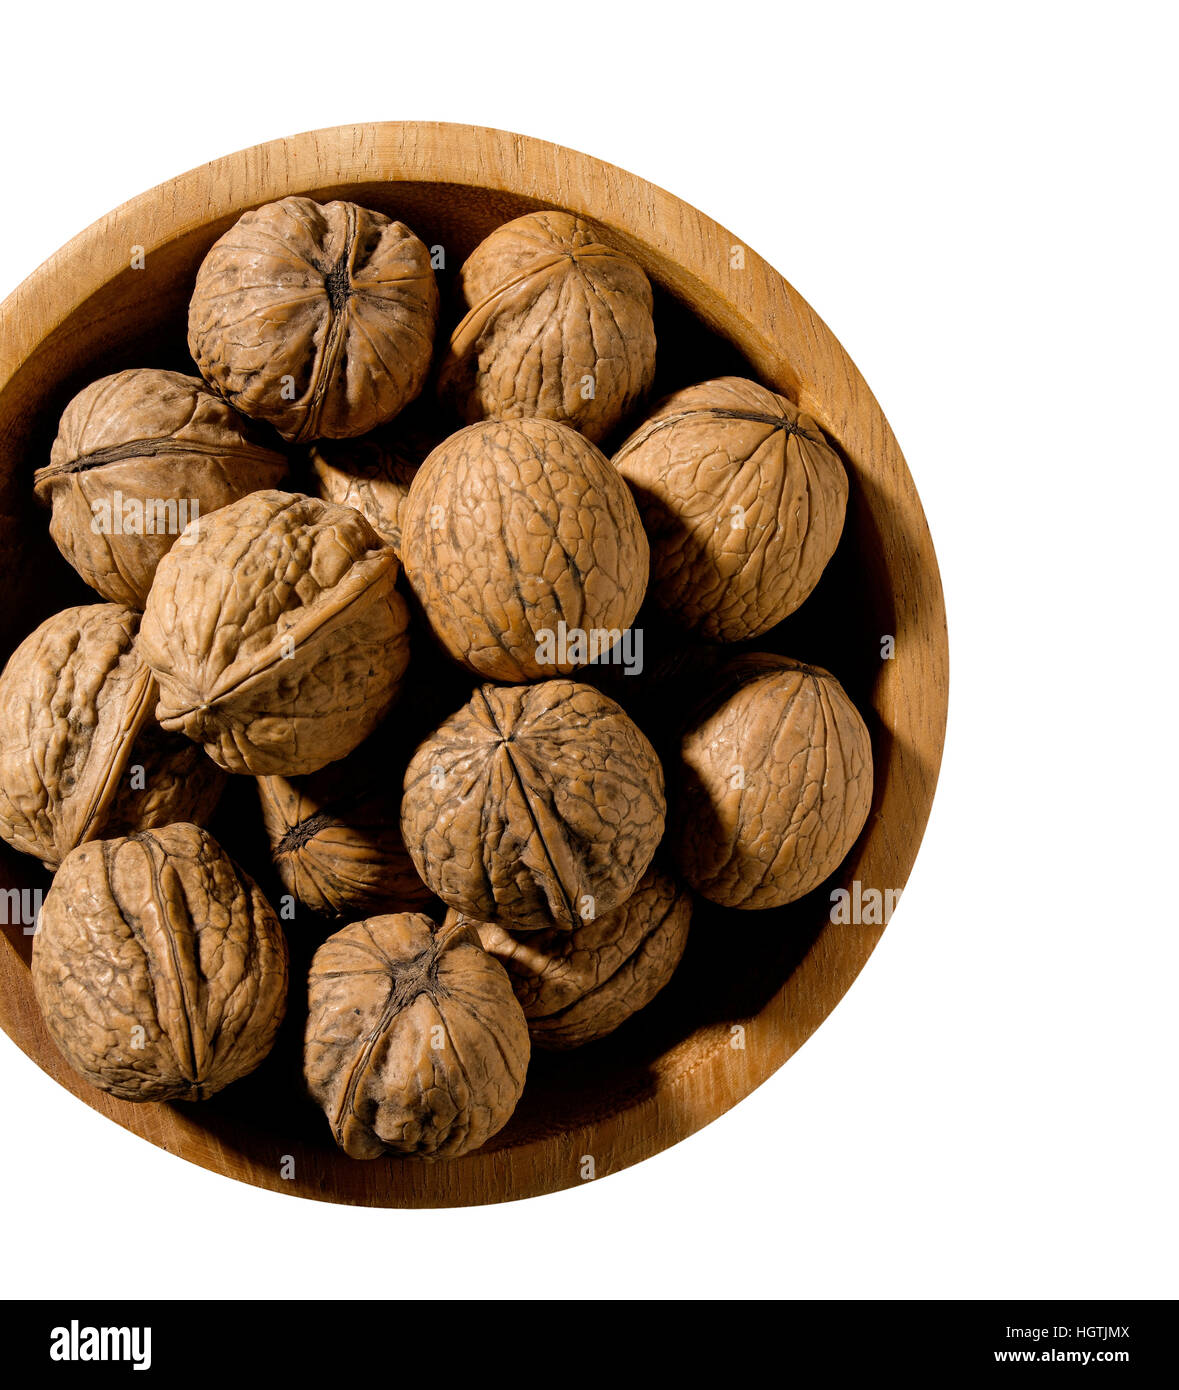 Walnut isolated in bowl - Stock Image